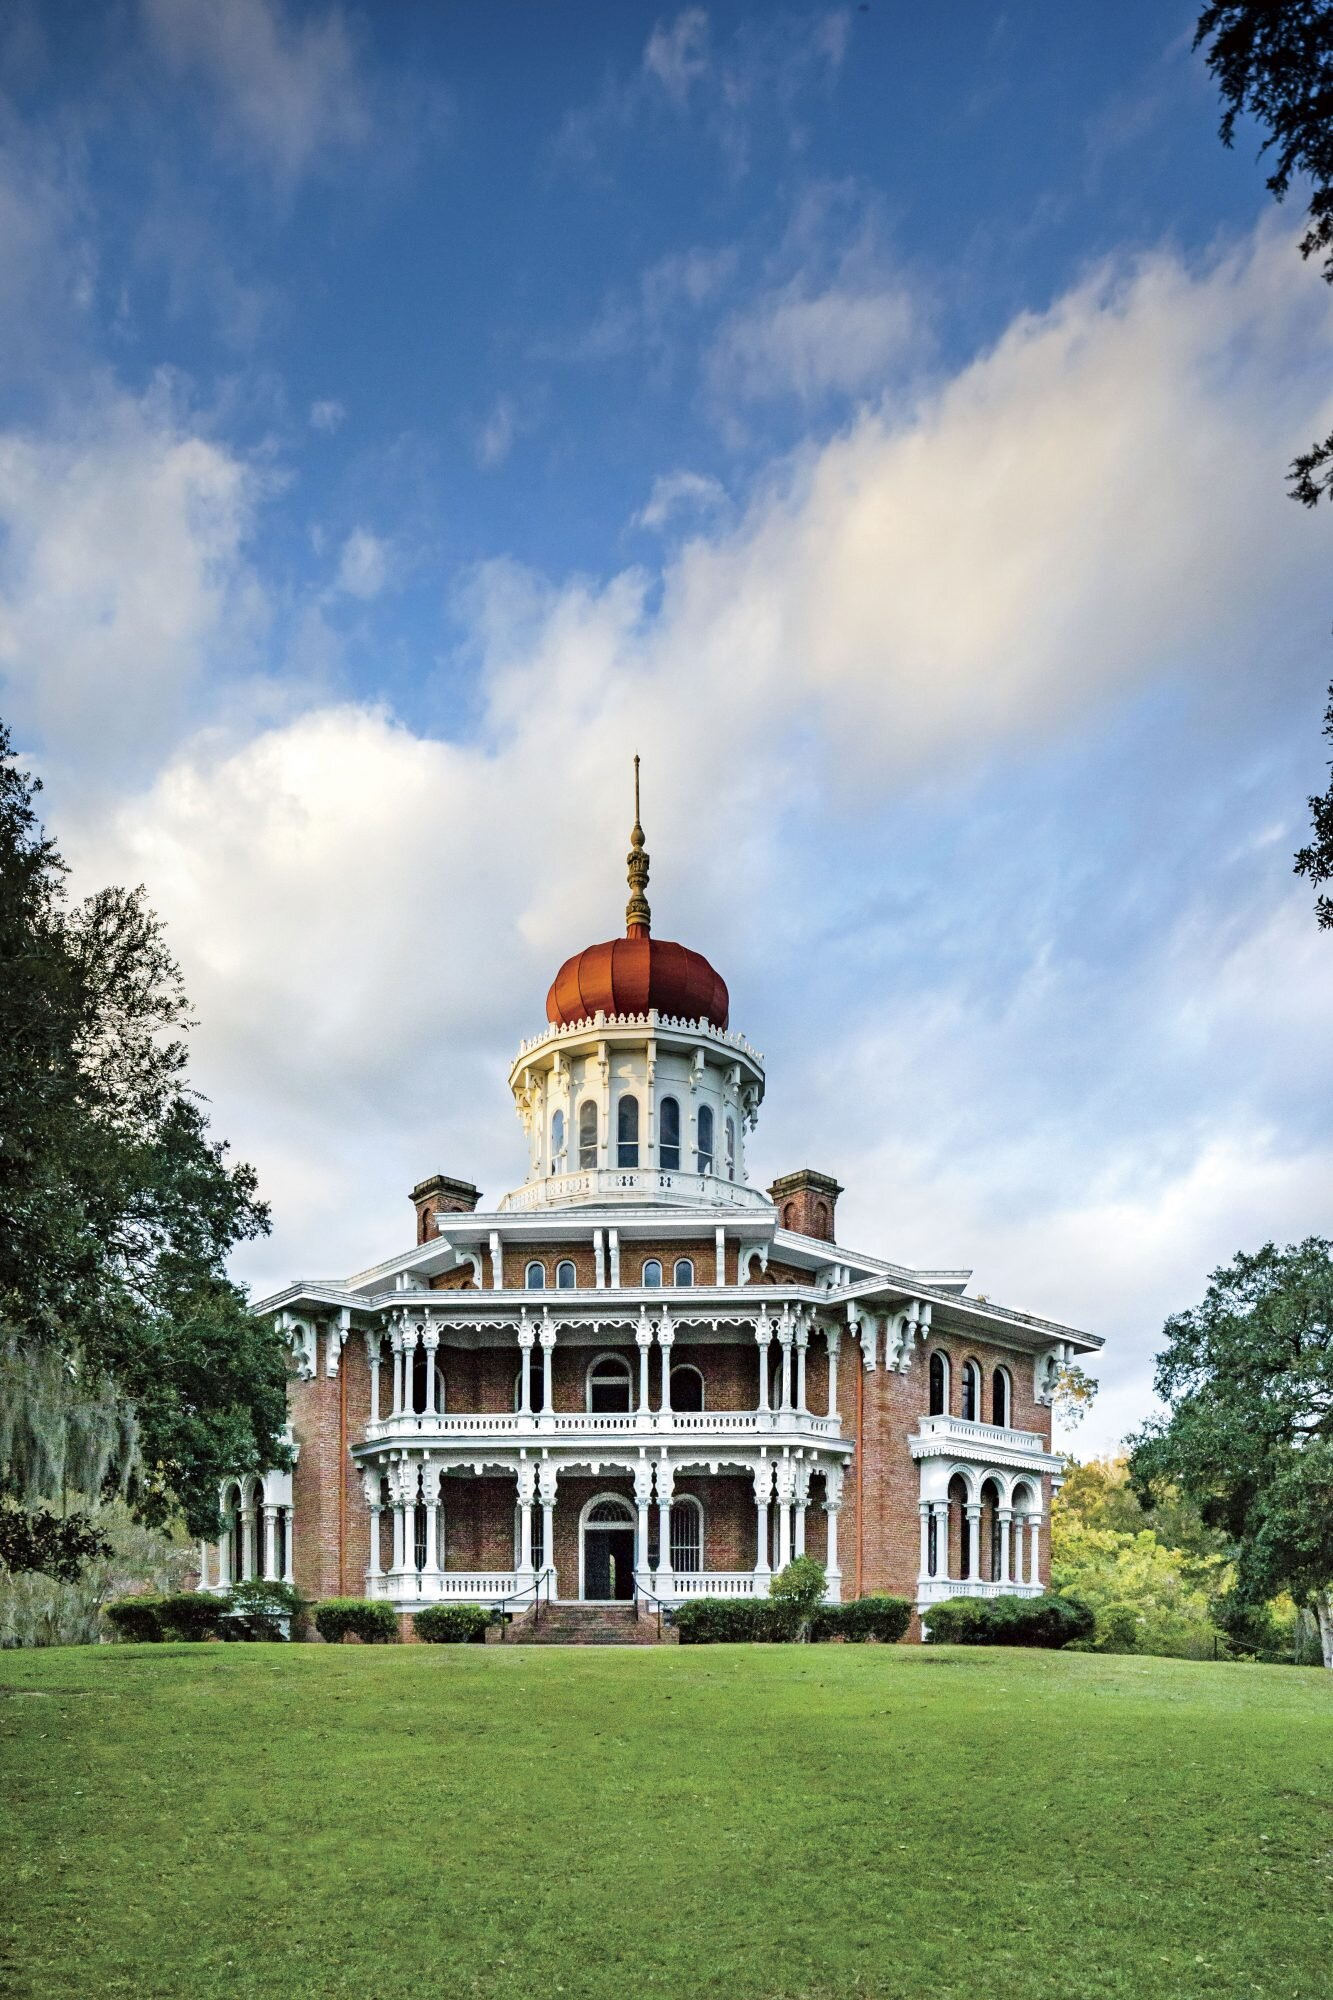 Why You Need to Visit Natchez, MS This Year | Southern Living Natchez House Plans on little rock house plans, new haven house plans, charlottesville house plans, winona house plans, hammond house plans, united states house plans, abbeville house plans, new jersey house plans, louisville house plans, pass christian house plans, washington house plans, detroit house plans, iowa house plans, springfield house plans, springhill house plans, brownsville house plans, mississippi gulf coast house plans, oakland house plans, henderson house plans, lexington house plans,